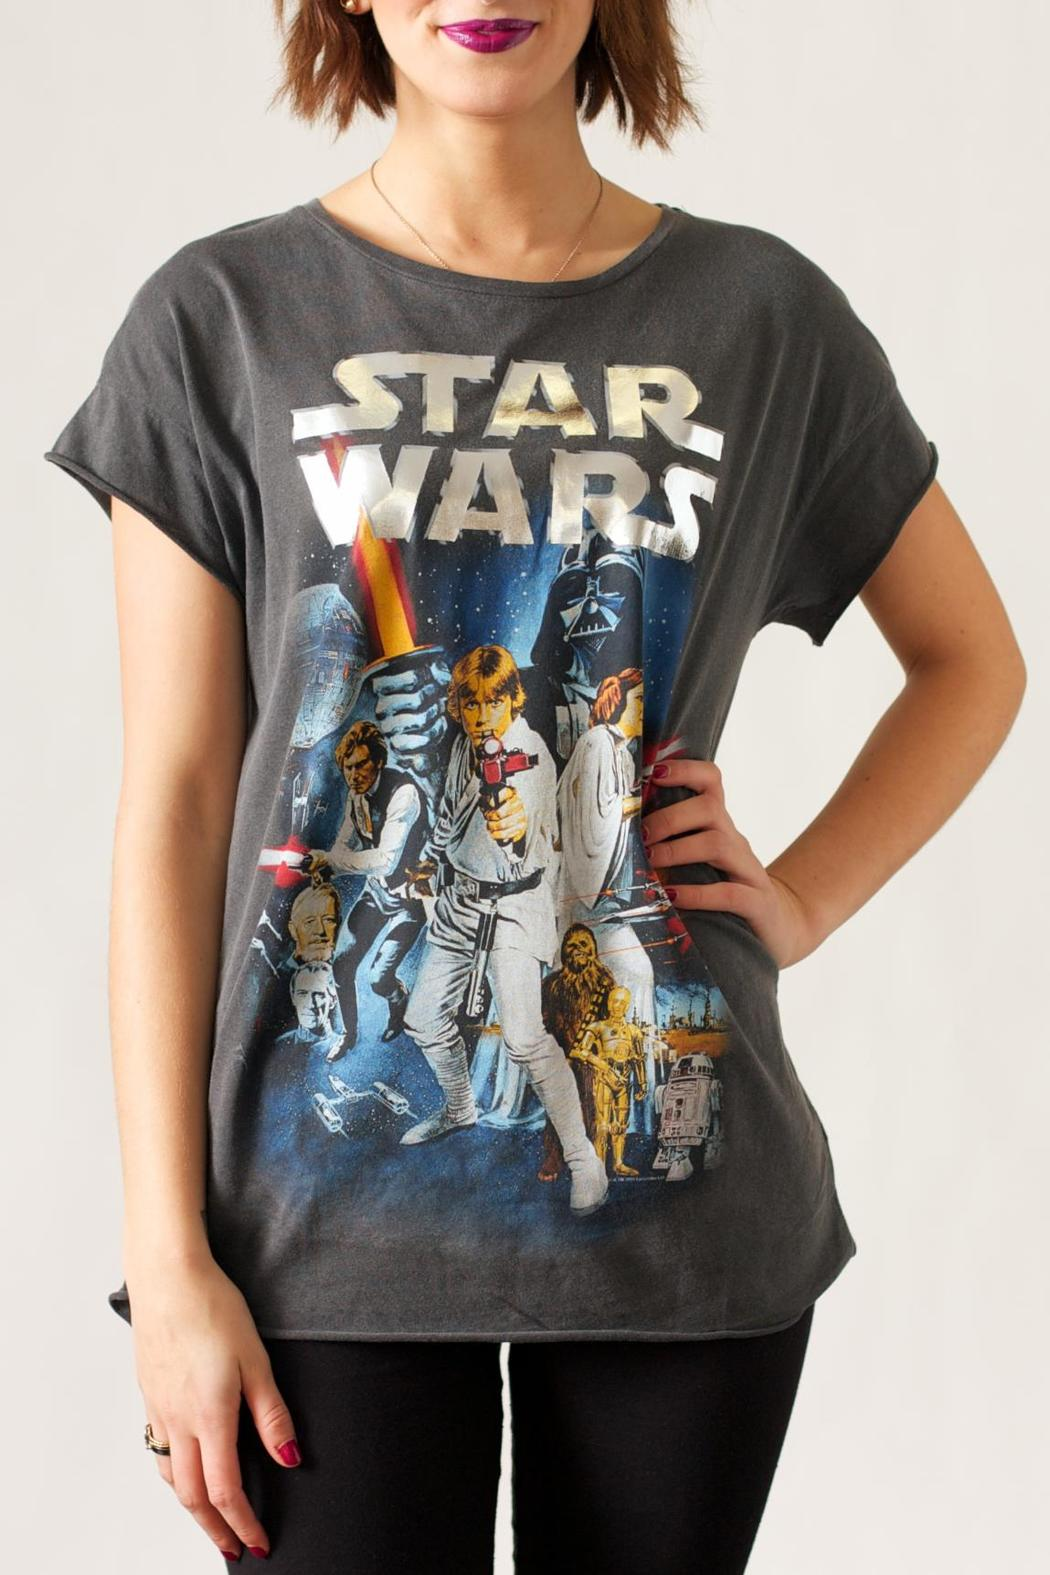 Junk Food Clothing Star Wars Tee From Philadelphia By May 23